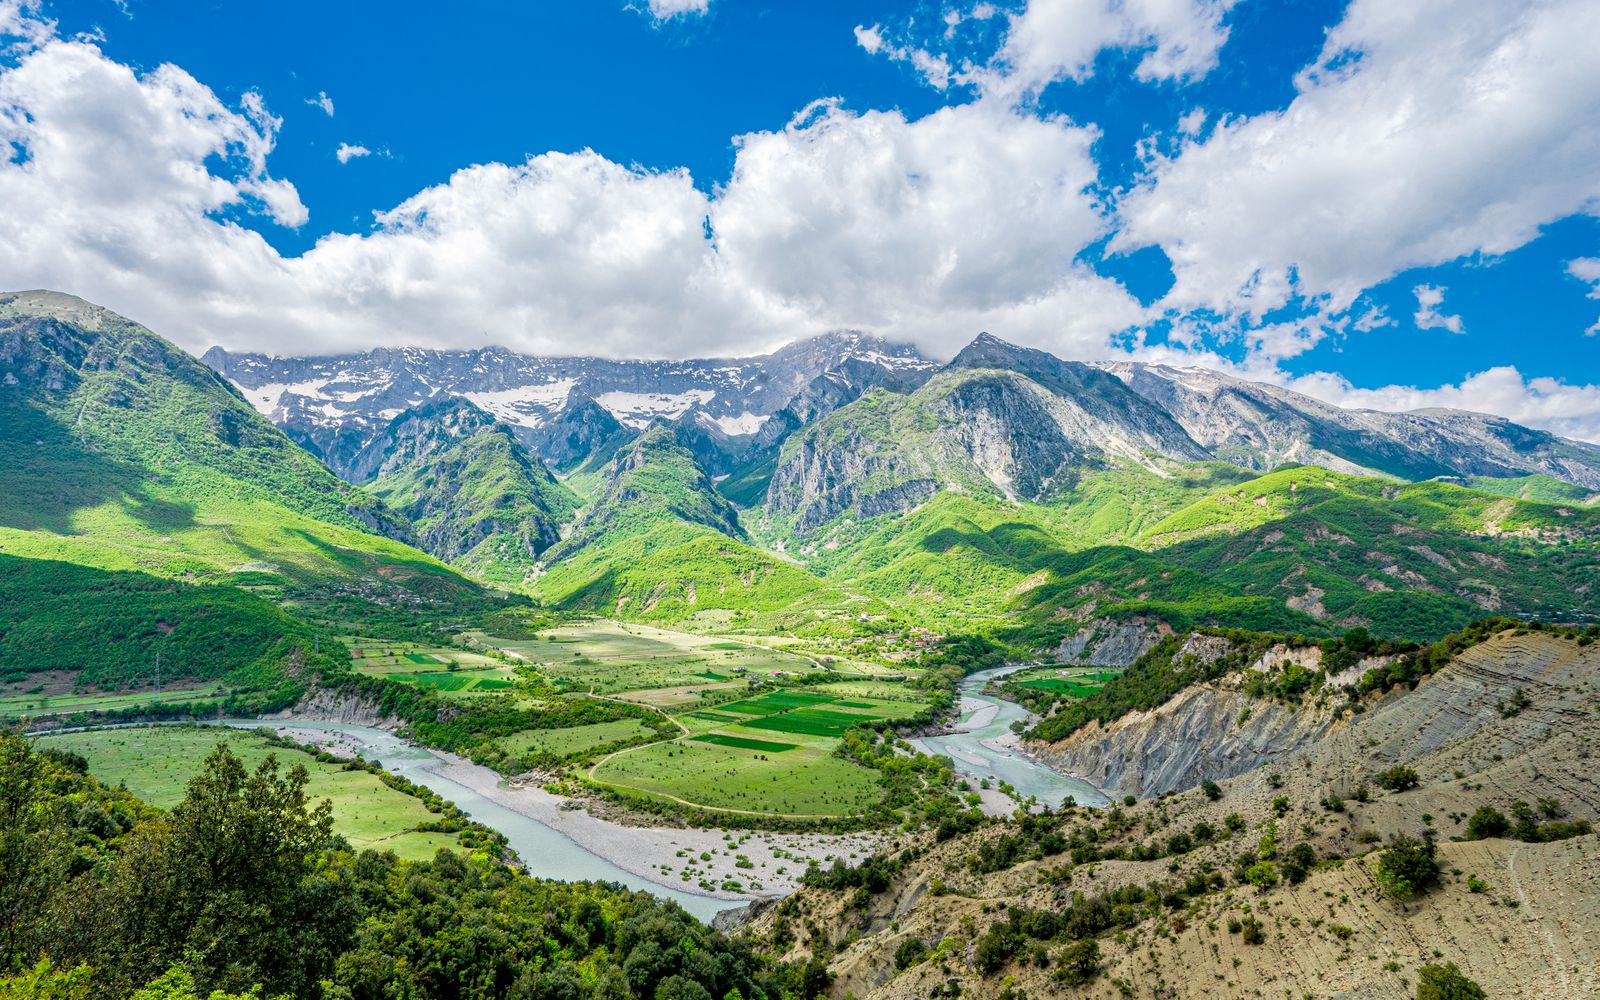 The mountains and the Vjosa River in Albania